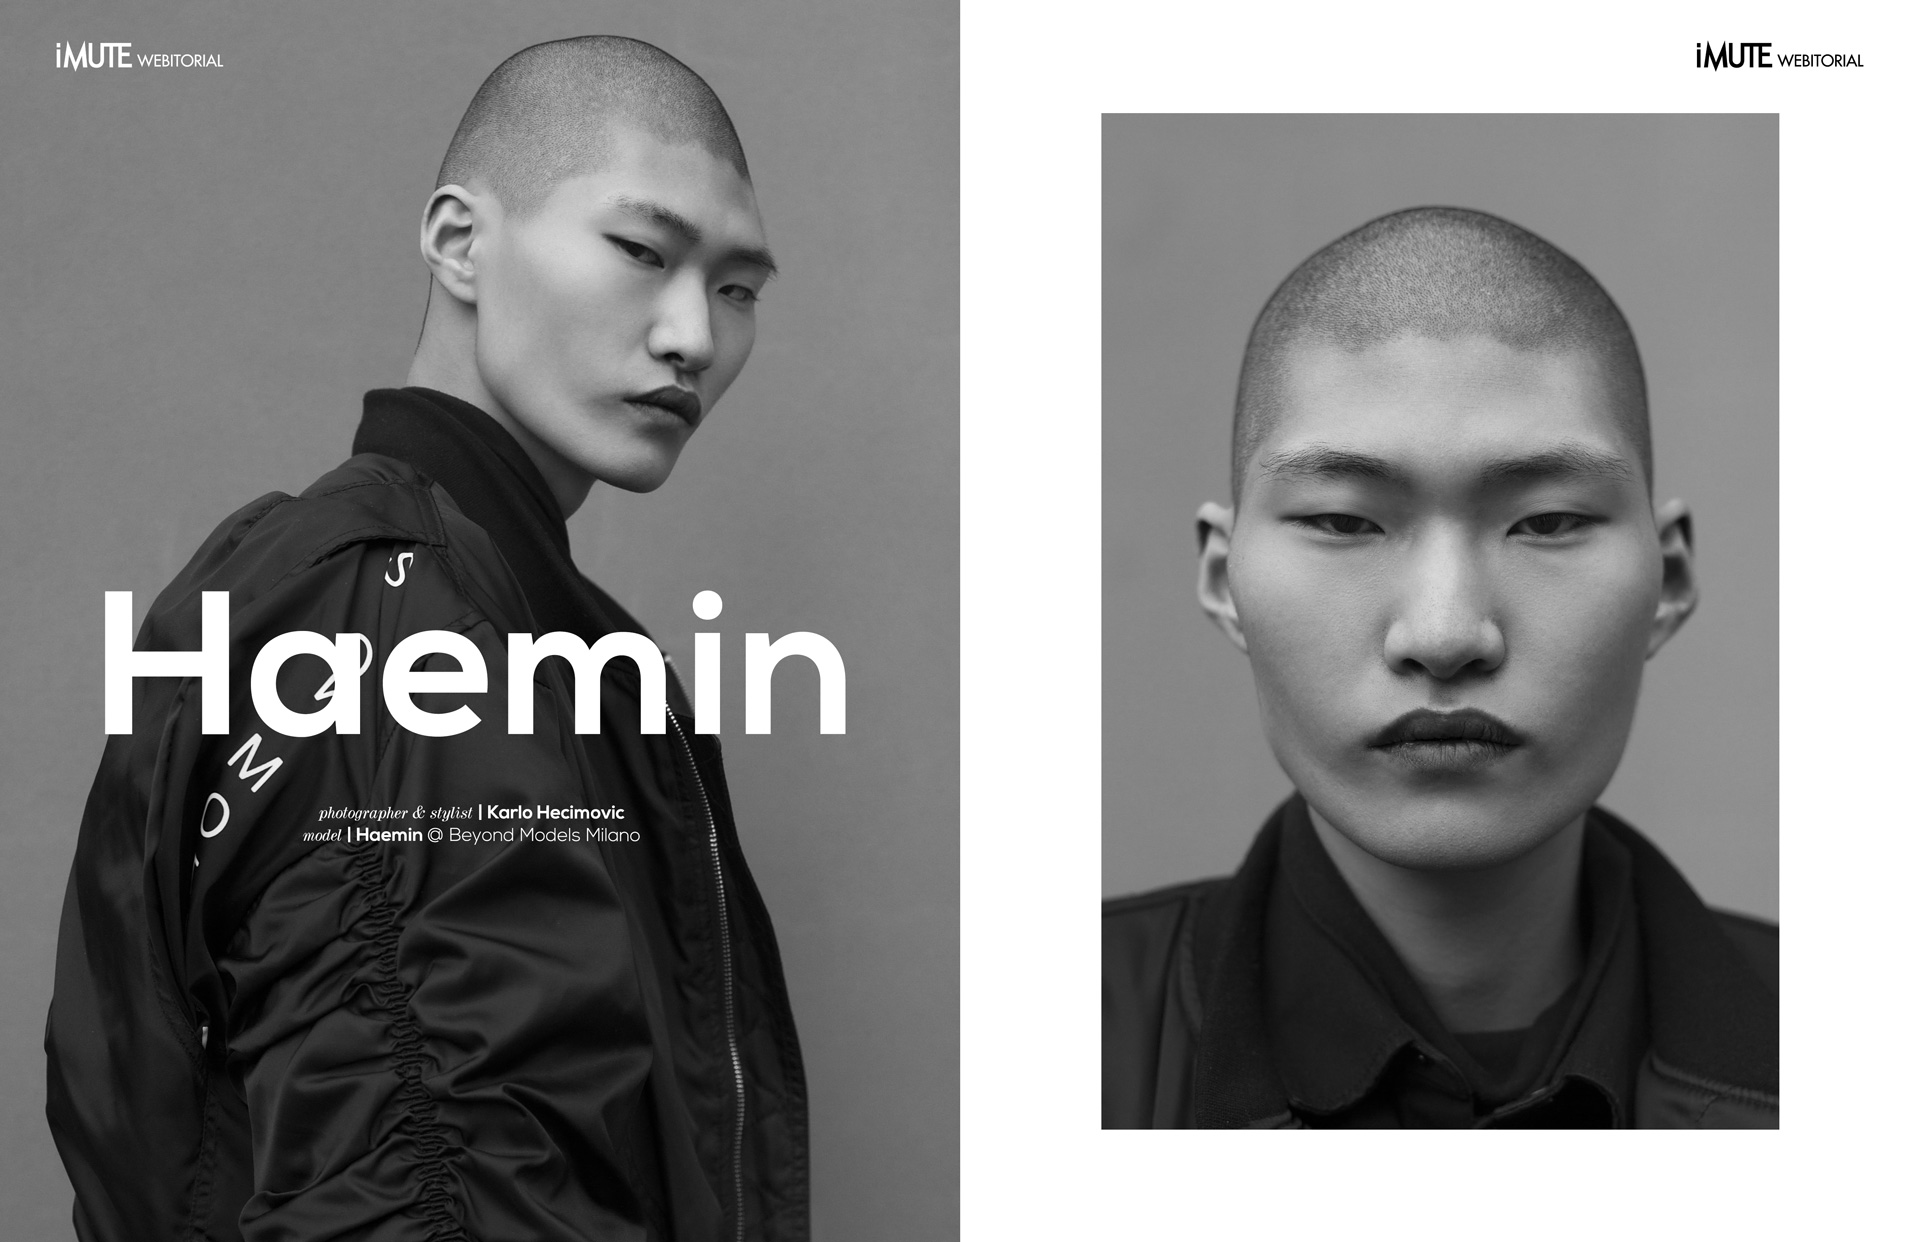 Haemin webitorial for iMute Magazine Photographer & Stylist | Karlo Hecimovic Model | Haemin @ Beyond Models Milano